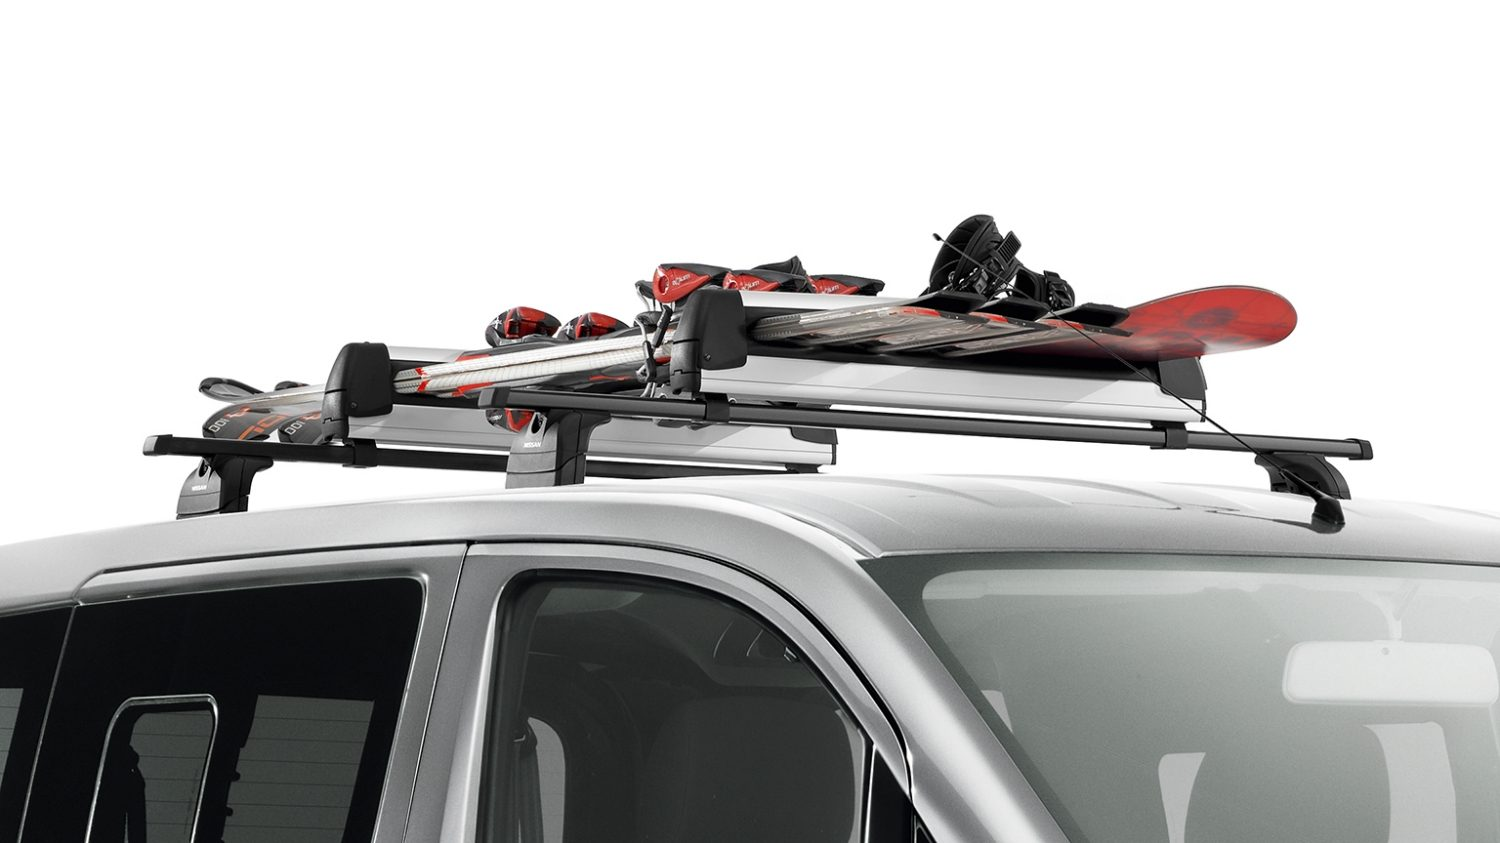 Nissan Evalia - Transportation - Ski carrier Up to 6 pairs